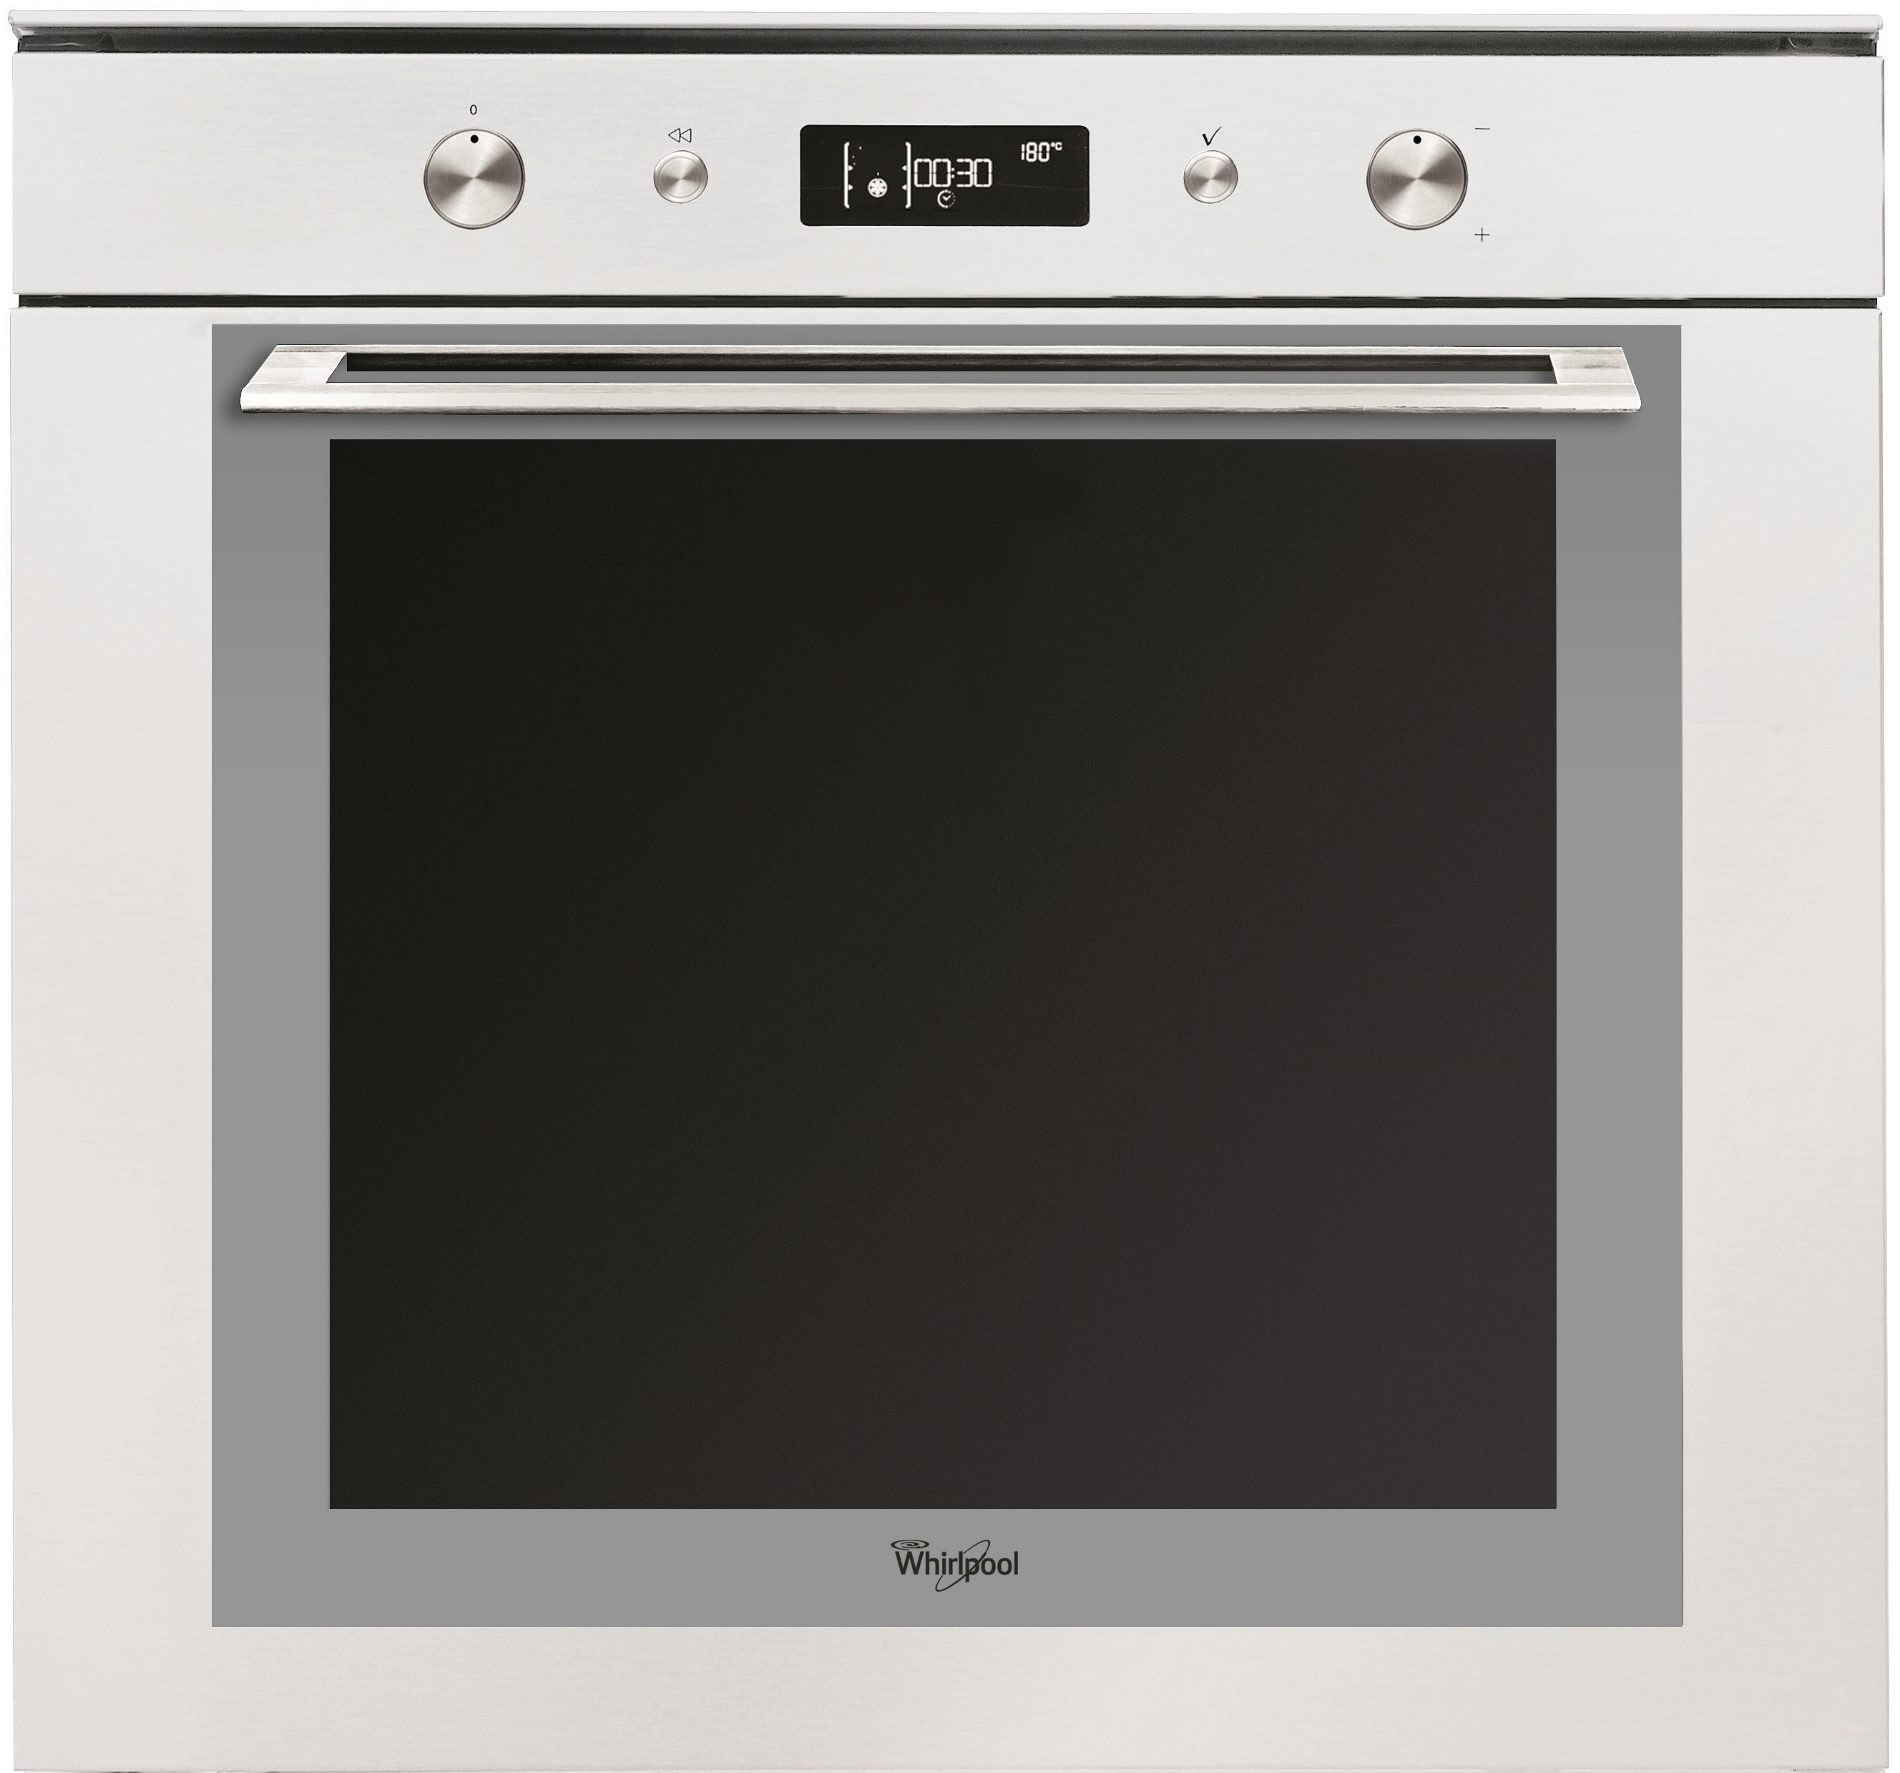 WHIRLPOOL - AKZM 7810 WH 01